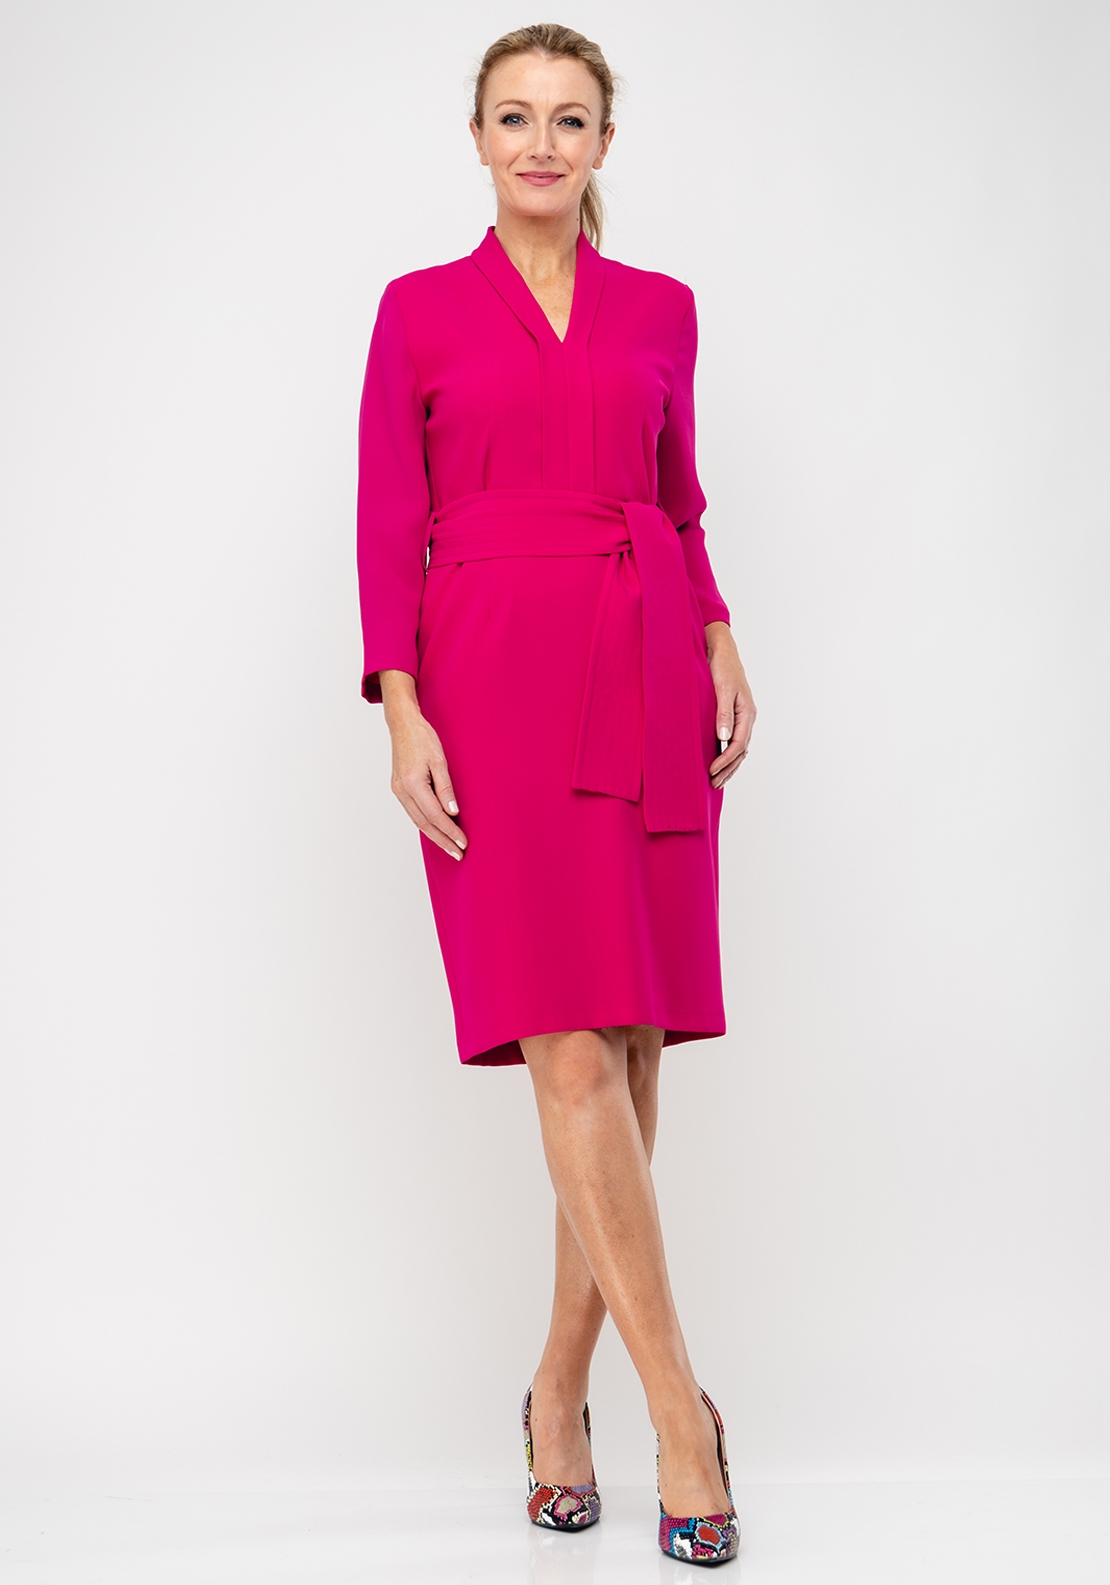 Daisy May V-Neck Belted Pencil Dress, Cerise Pink